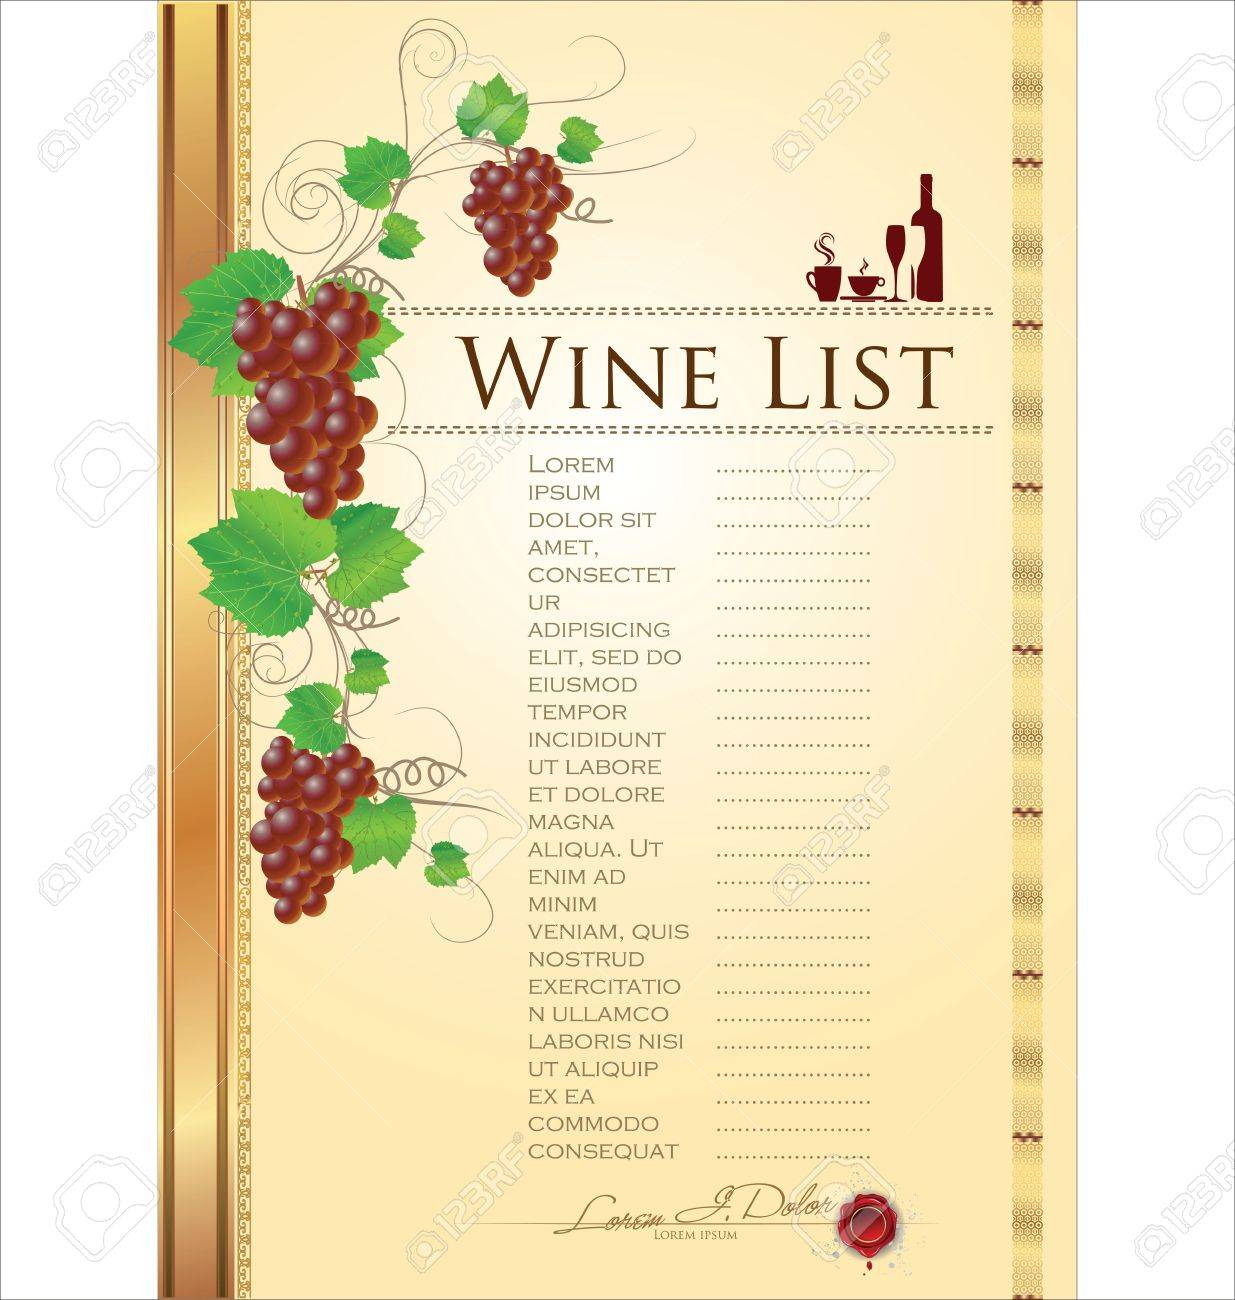 Wine List Menu Card Royalty Free Cliparts, Vectors, And Stock ...